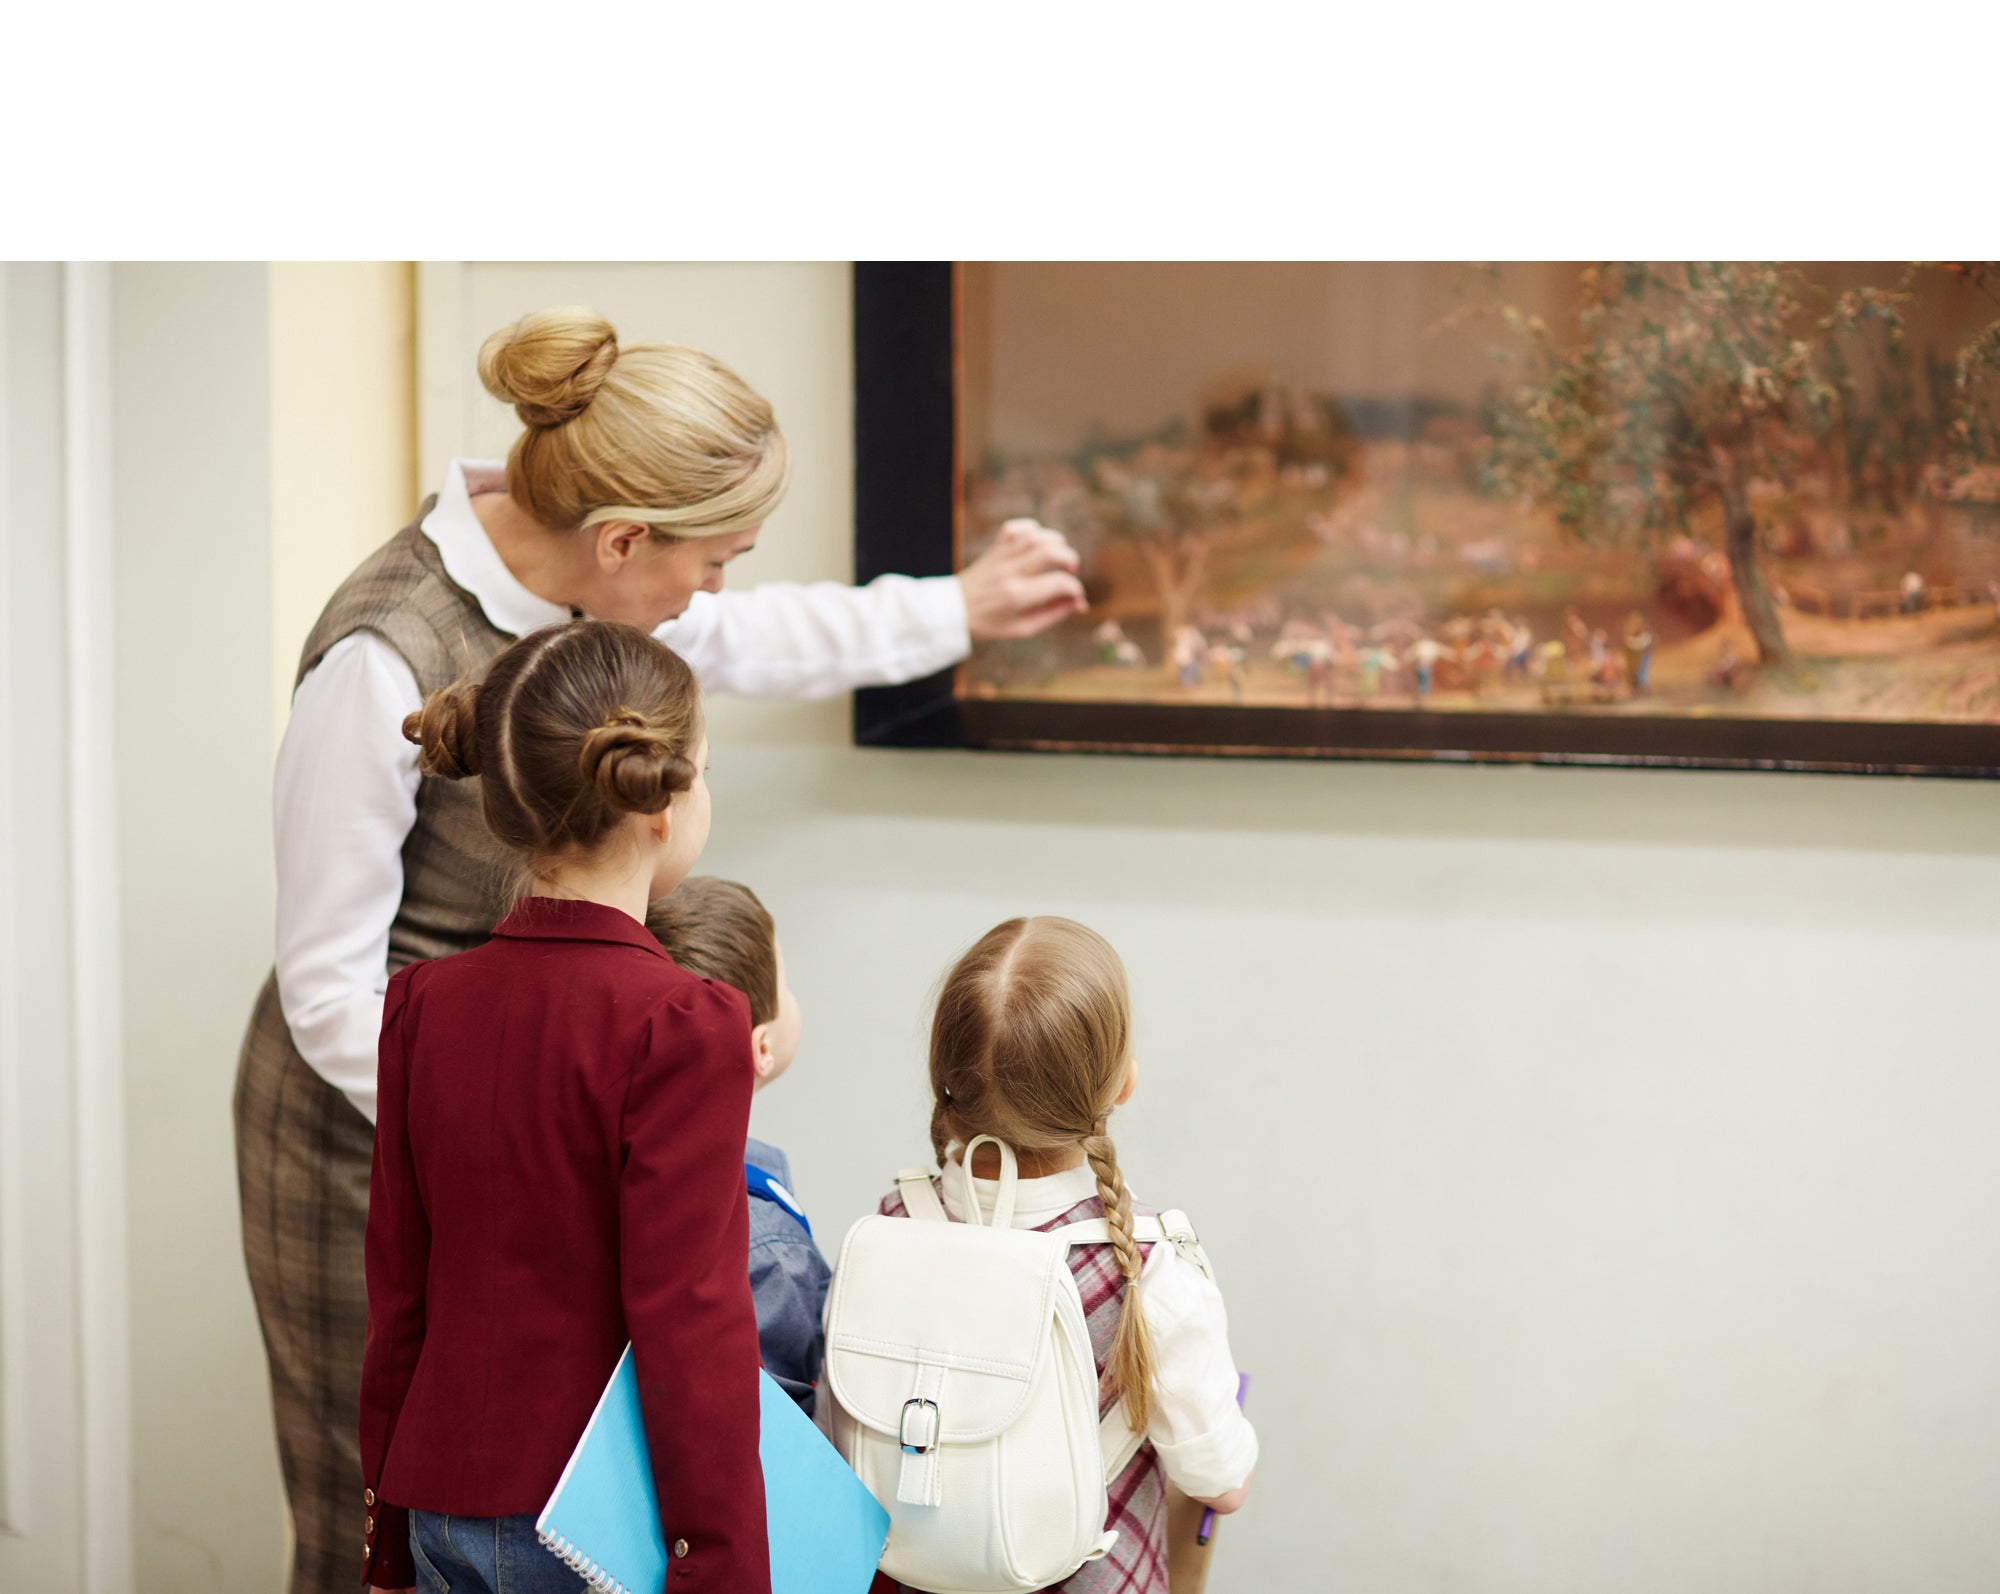 Teacher pointing to a painting with two children looking on